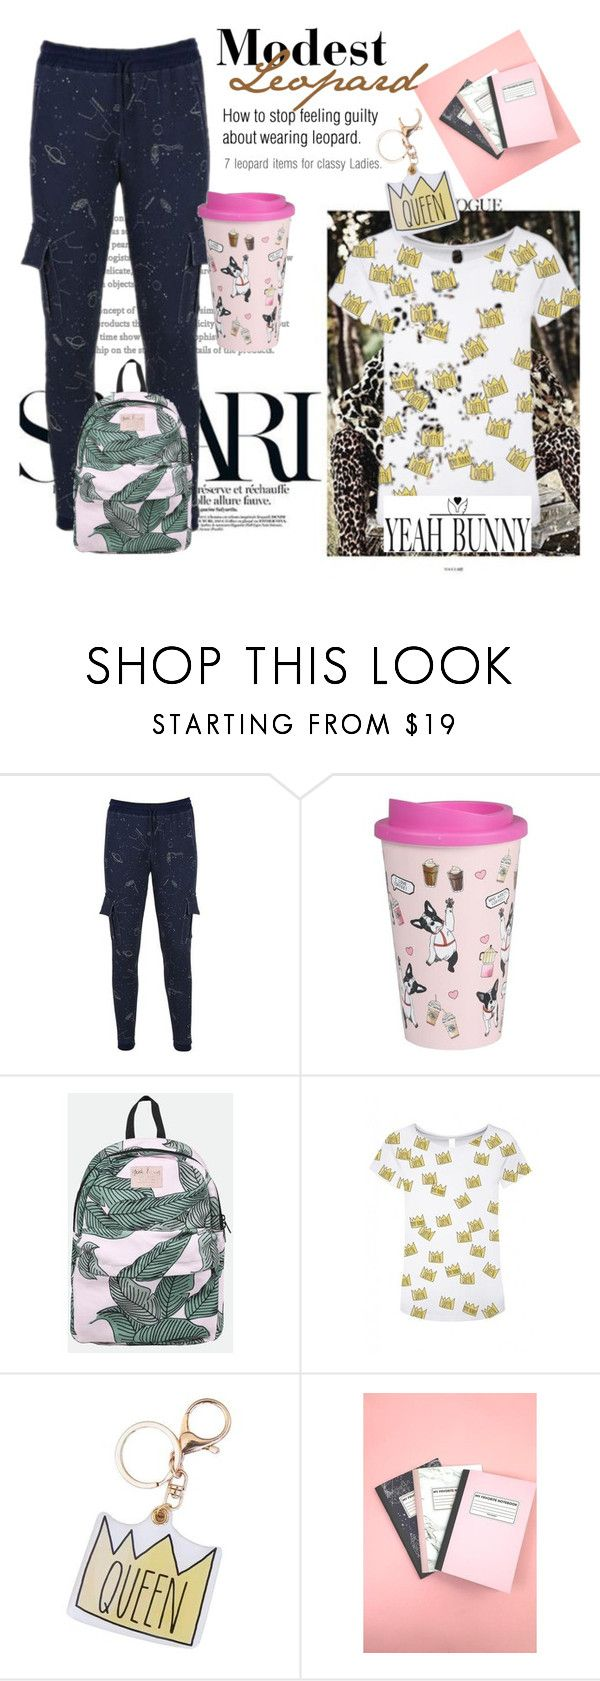 """""""YEAHBUNNY CONTEST with prize! $70 +free shipping!"""" by elci-el ❤ liked on Polyvore featuring Yeah Bunny"""